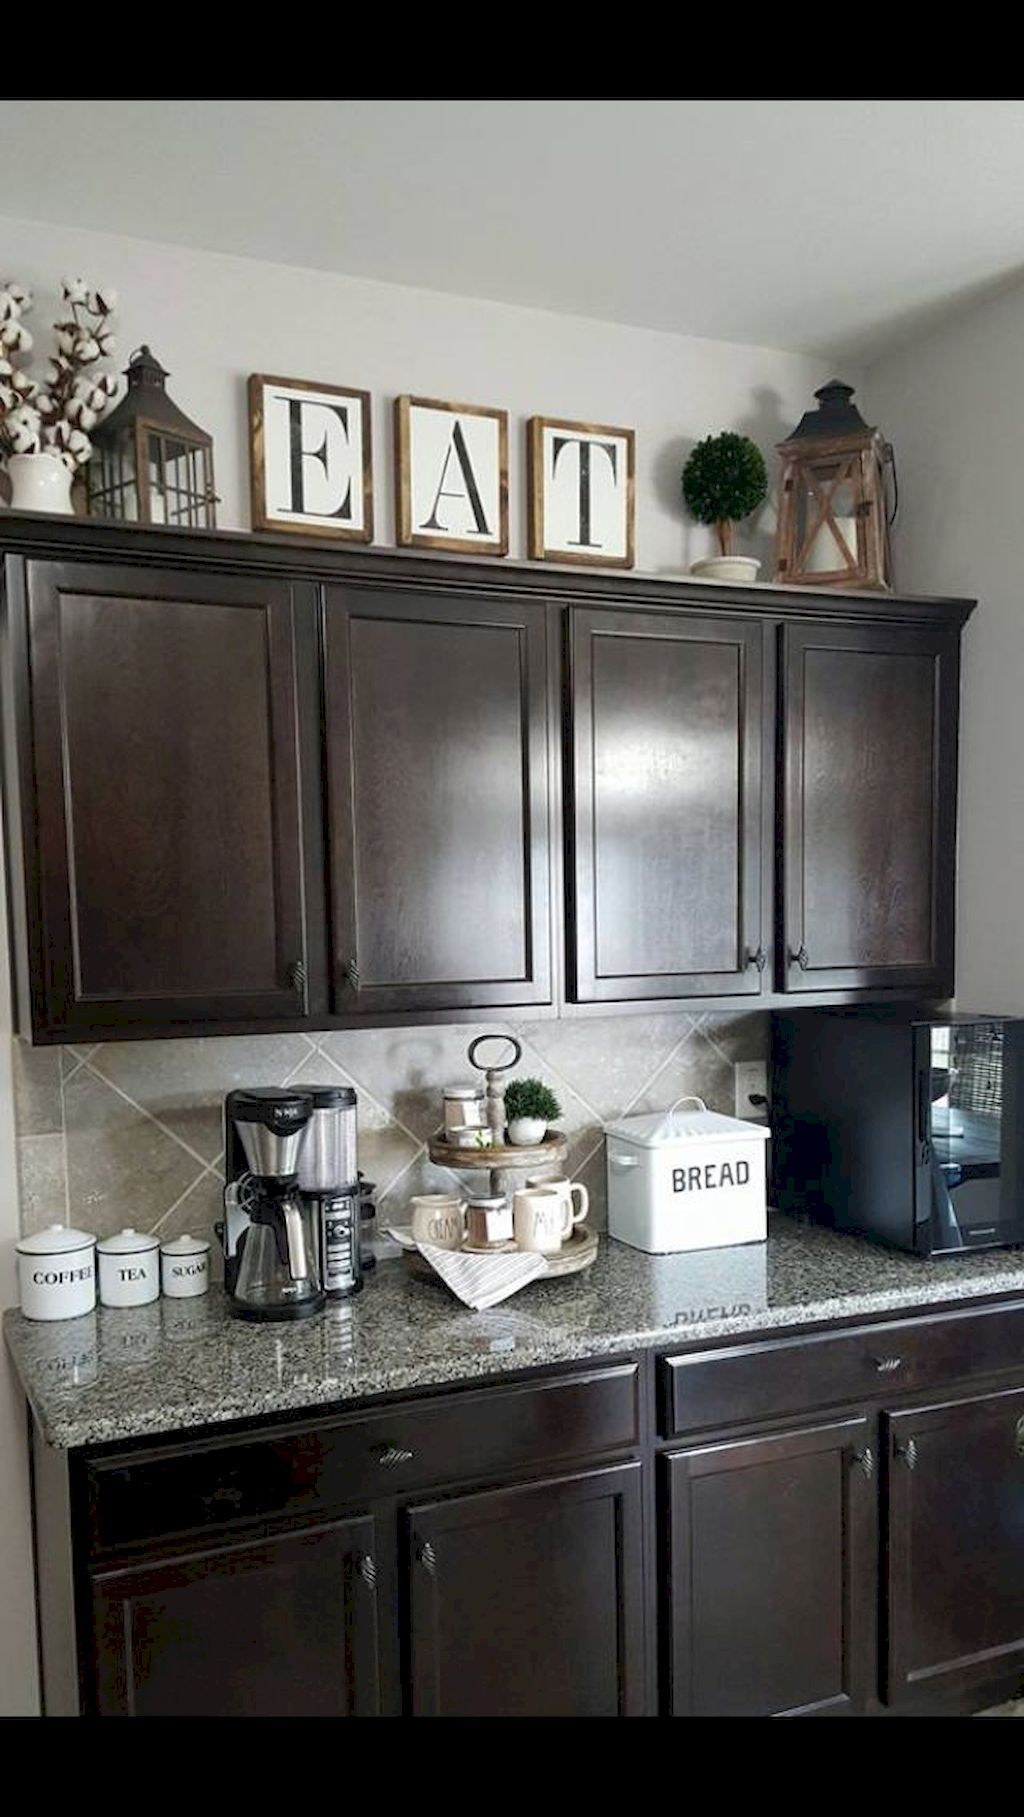 Makeover Your Kitchen Cabinets for More Storage And More Floor